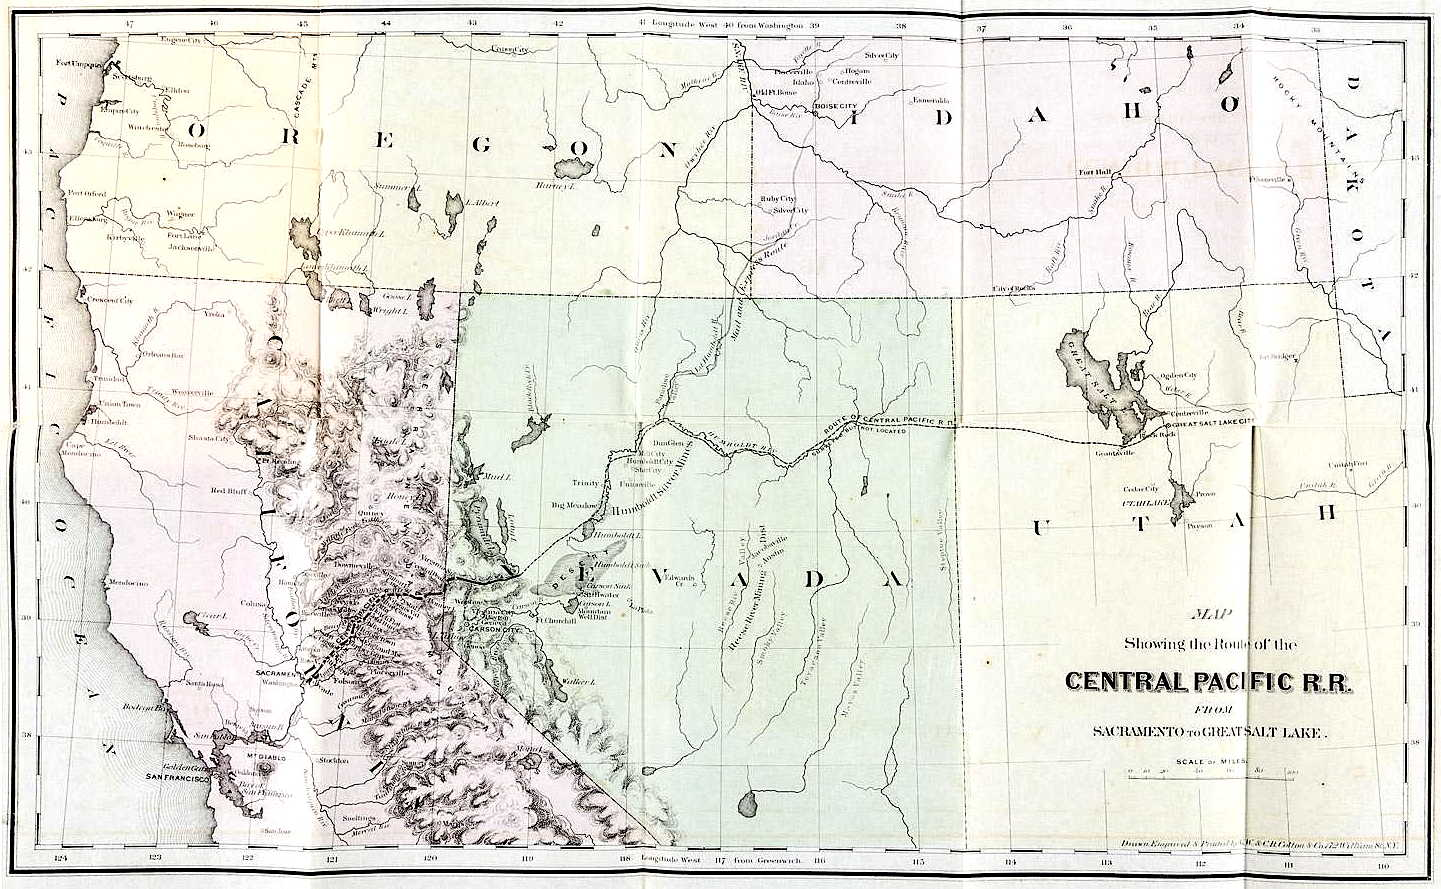 The Central Pacific R. R. of California. Character of the Work, Its Progress, Resources, Earnings, and Future Prospects. New York, October, 1866.